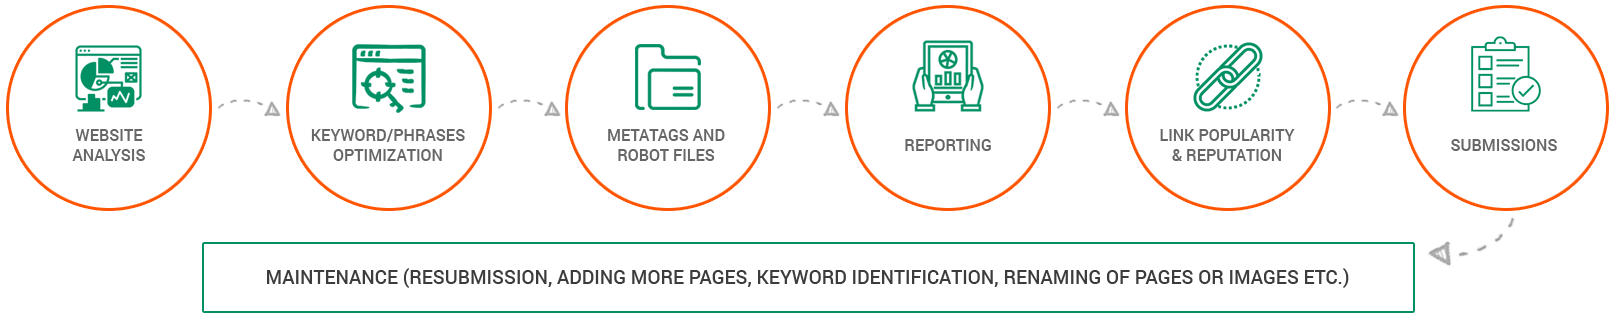 simple seo process by Geforce Technologies